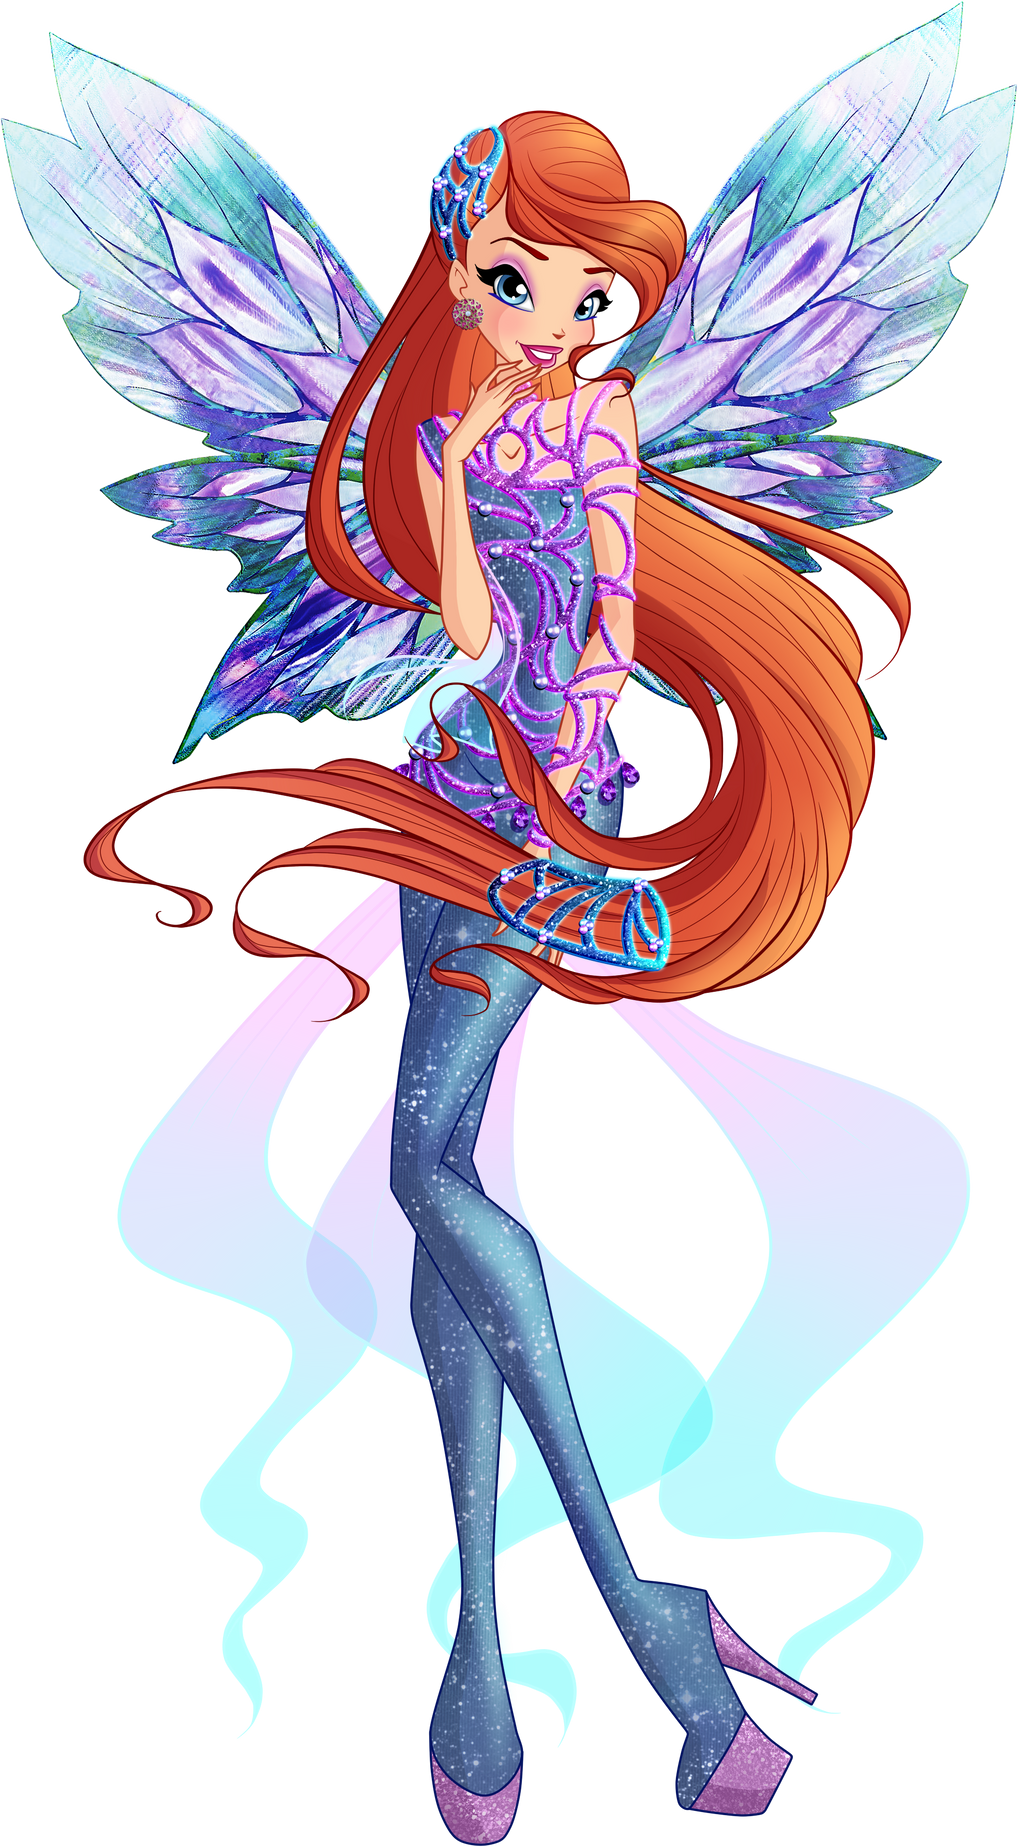 Winx Club - Bloom 2D Dreamix by Feeleam